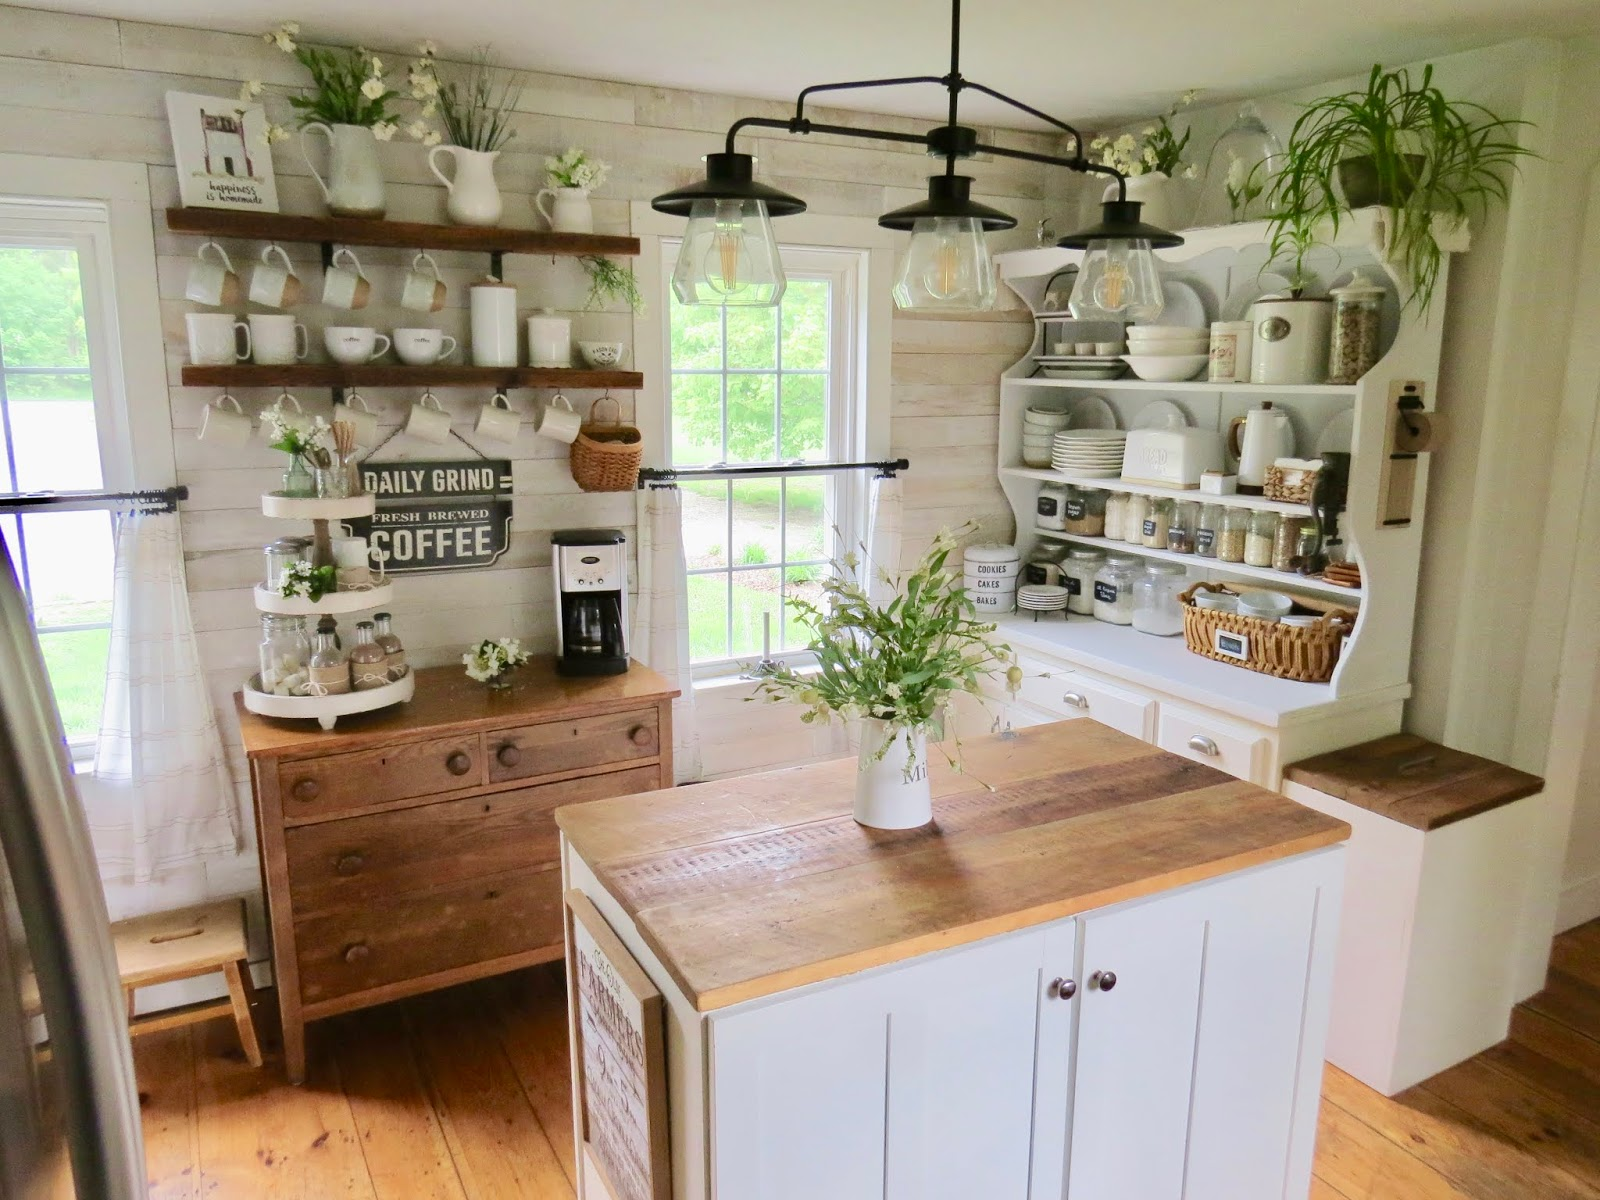 The Long Awaited Home: DIY Farmhouse Kitchen on a Budget